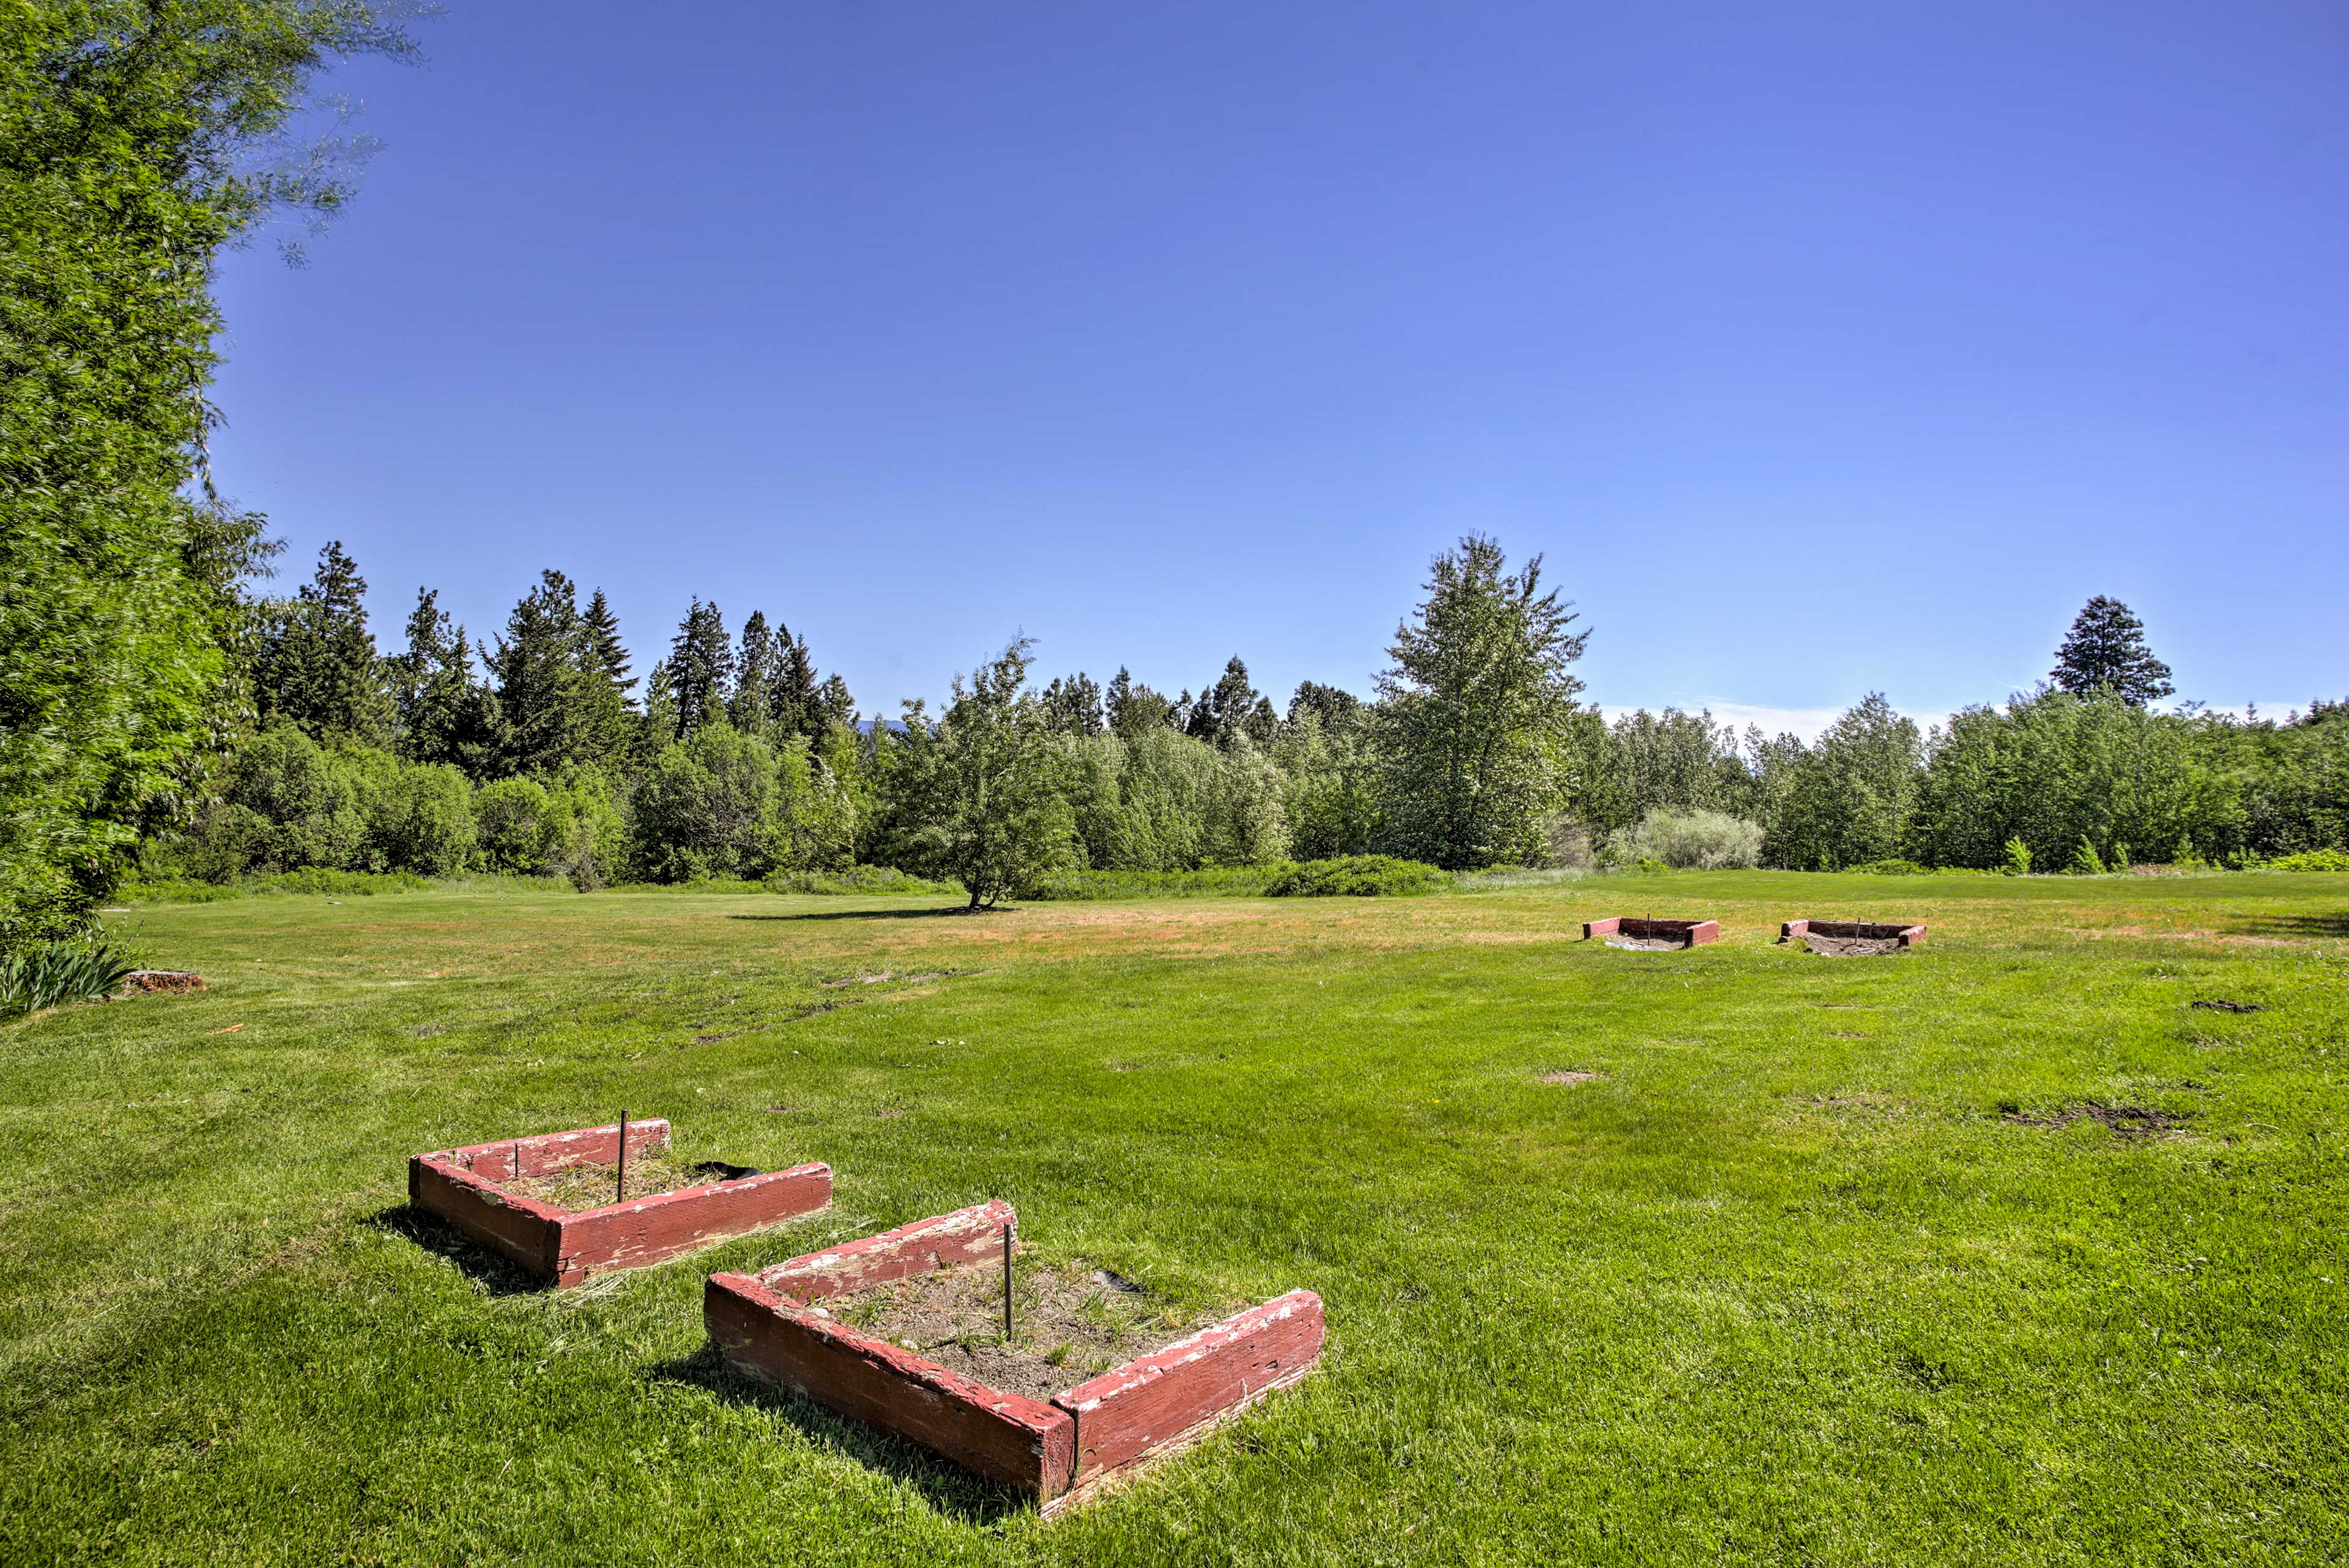 The 8-acre property has 2 horseshoe pits so you can practice your skills.